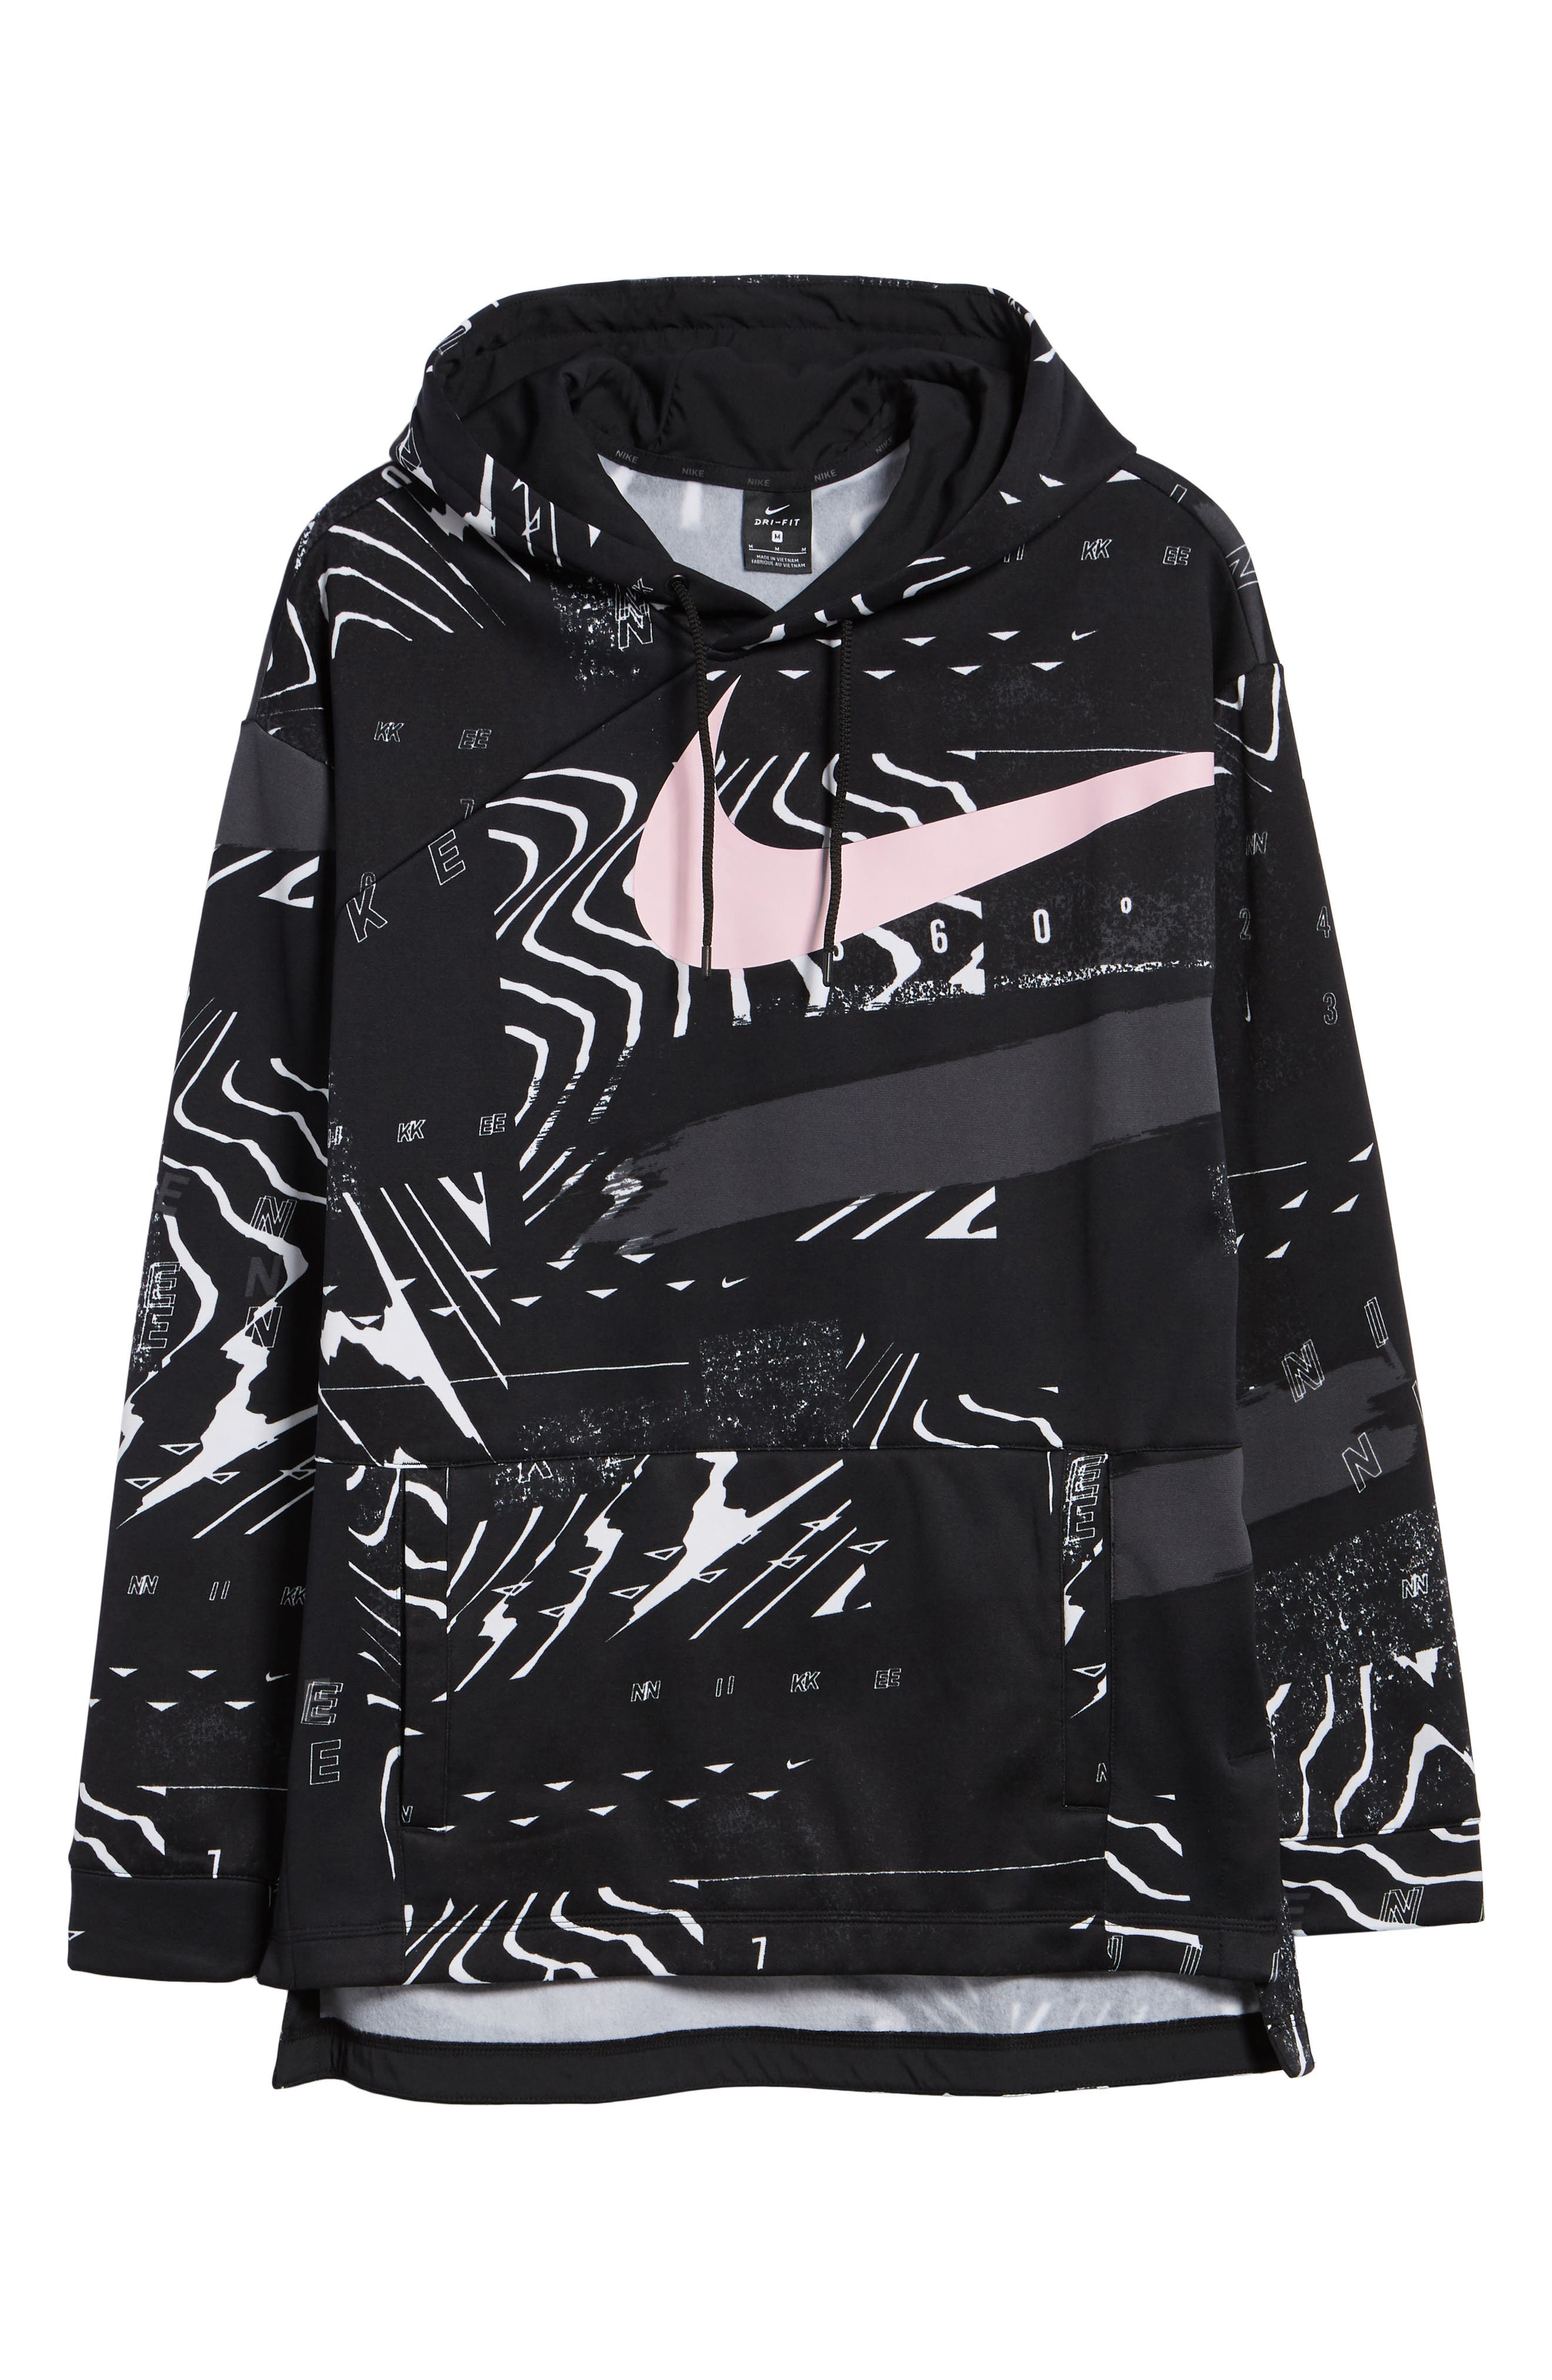 3.0 Therma-FIT Hoodie,                             Alternate thumbnail 6, color,                             BLACK/ WHITE/ PINK FOAM